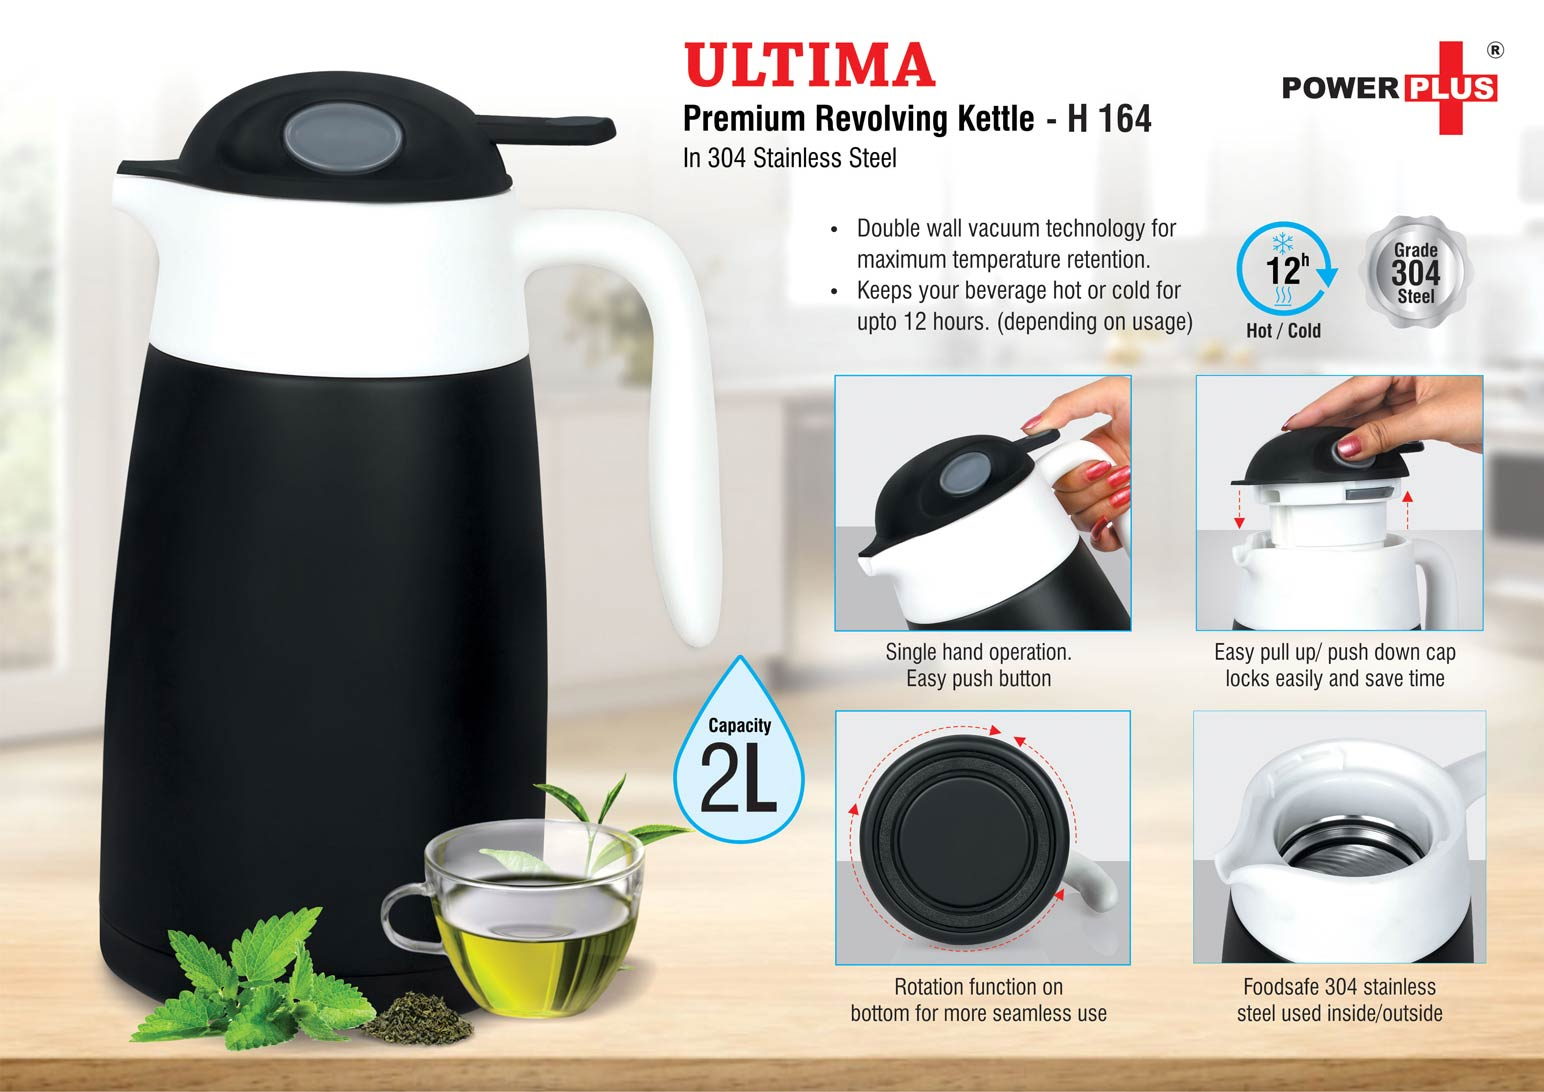 H164 - Ultima: Premium revolving kettle in stainless steel (2L approx) | 304 Steel Inside & Outside